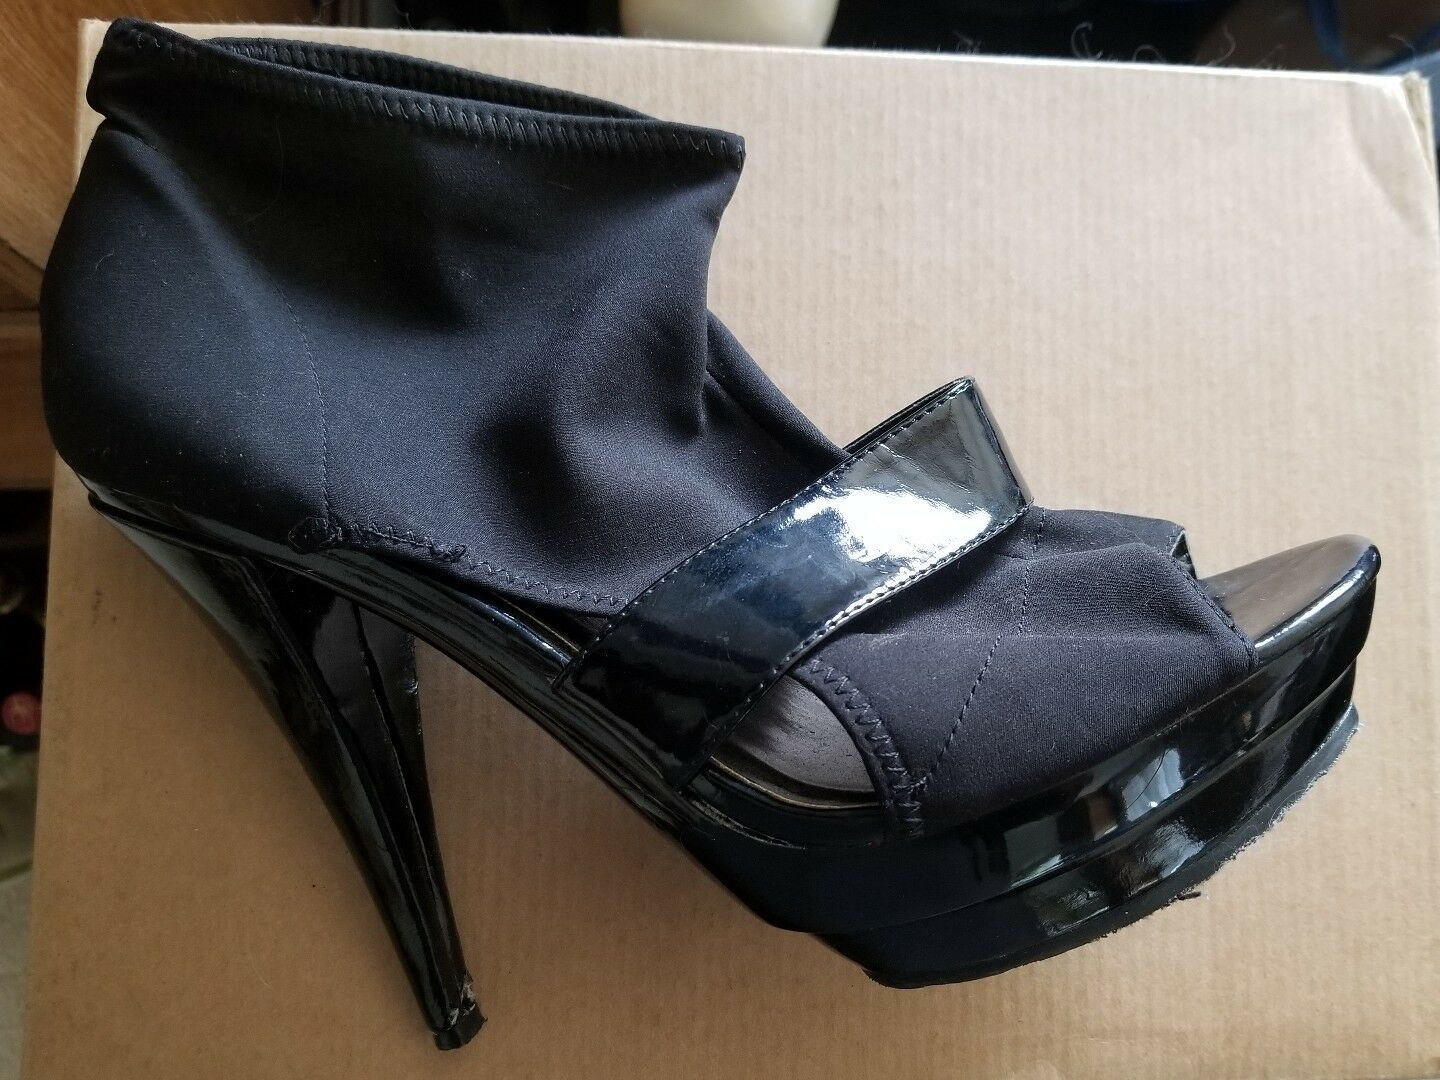 Zigisoho Charger Sz Black Women's High Heels Sz Charger 10 554b5e